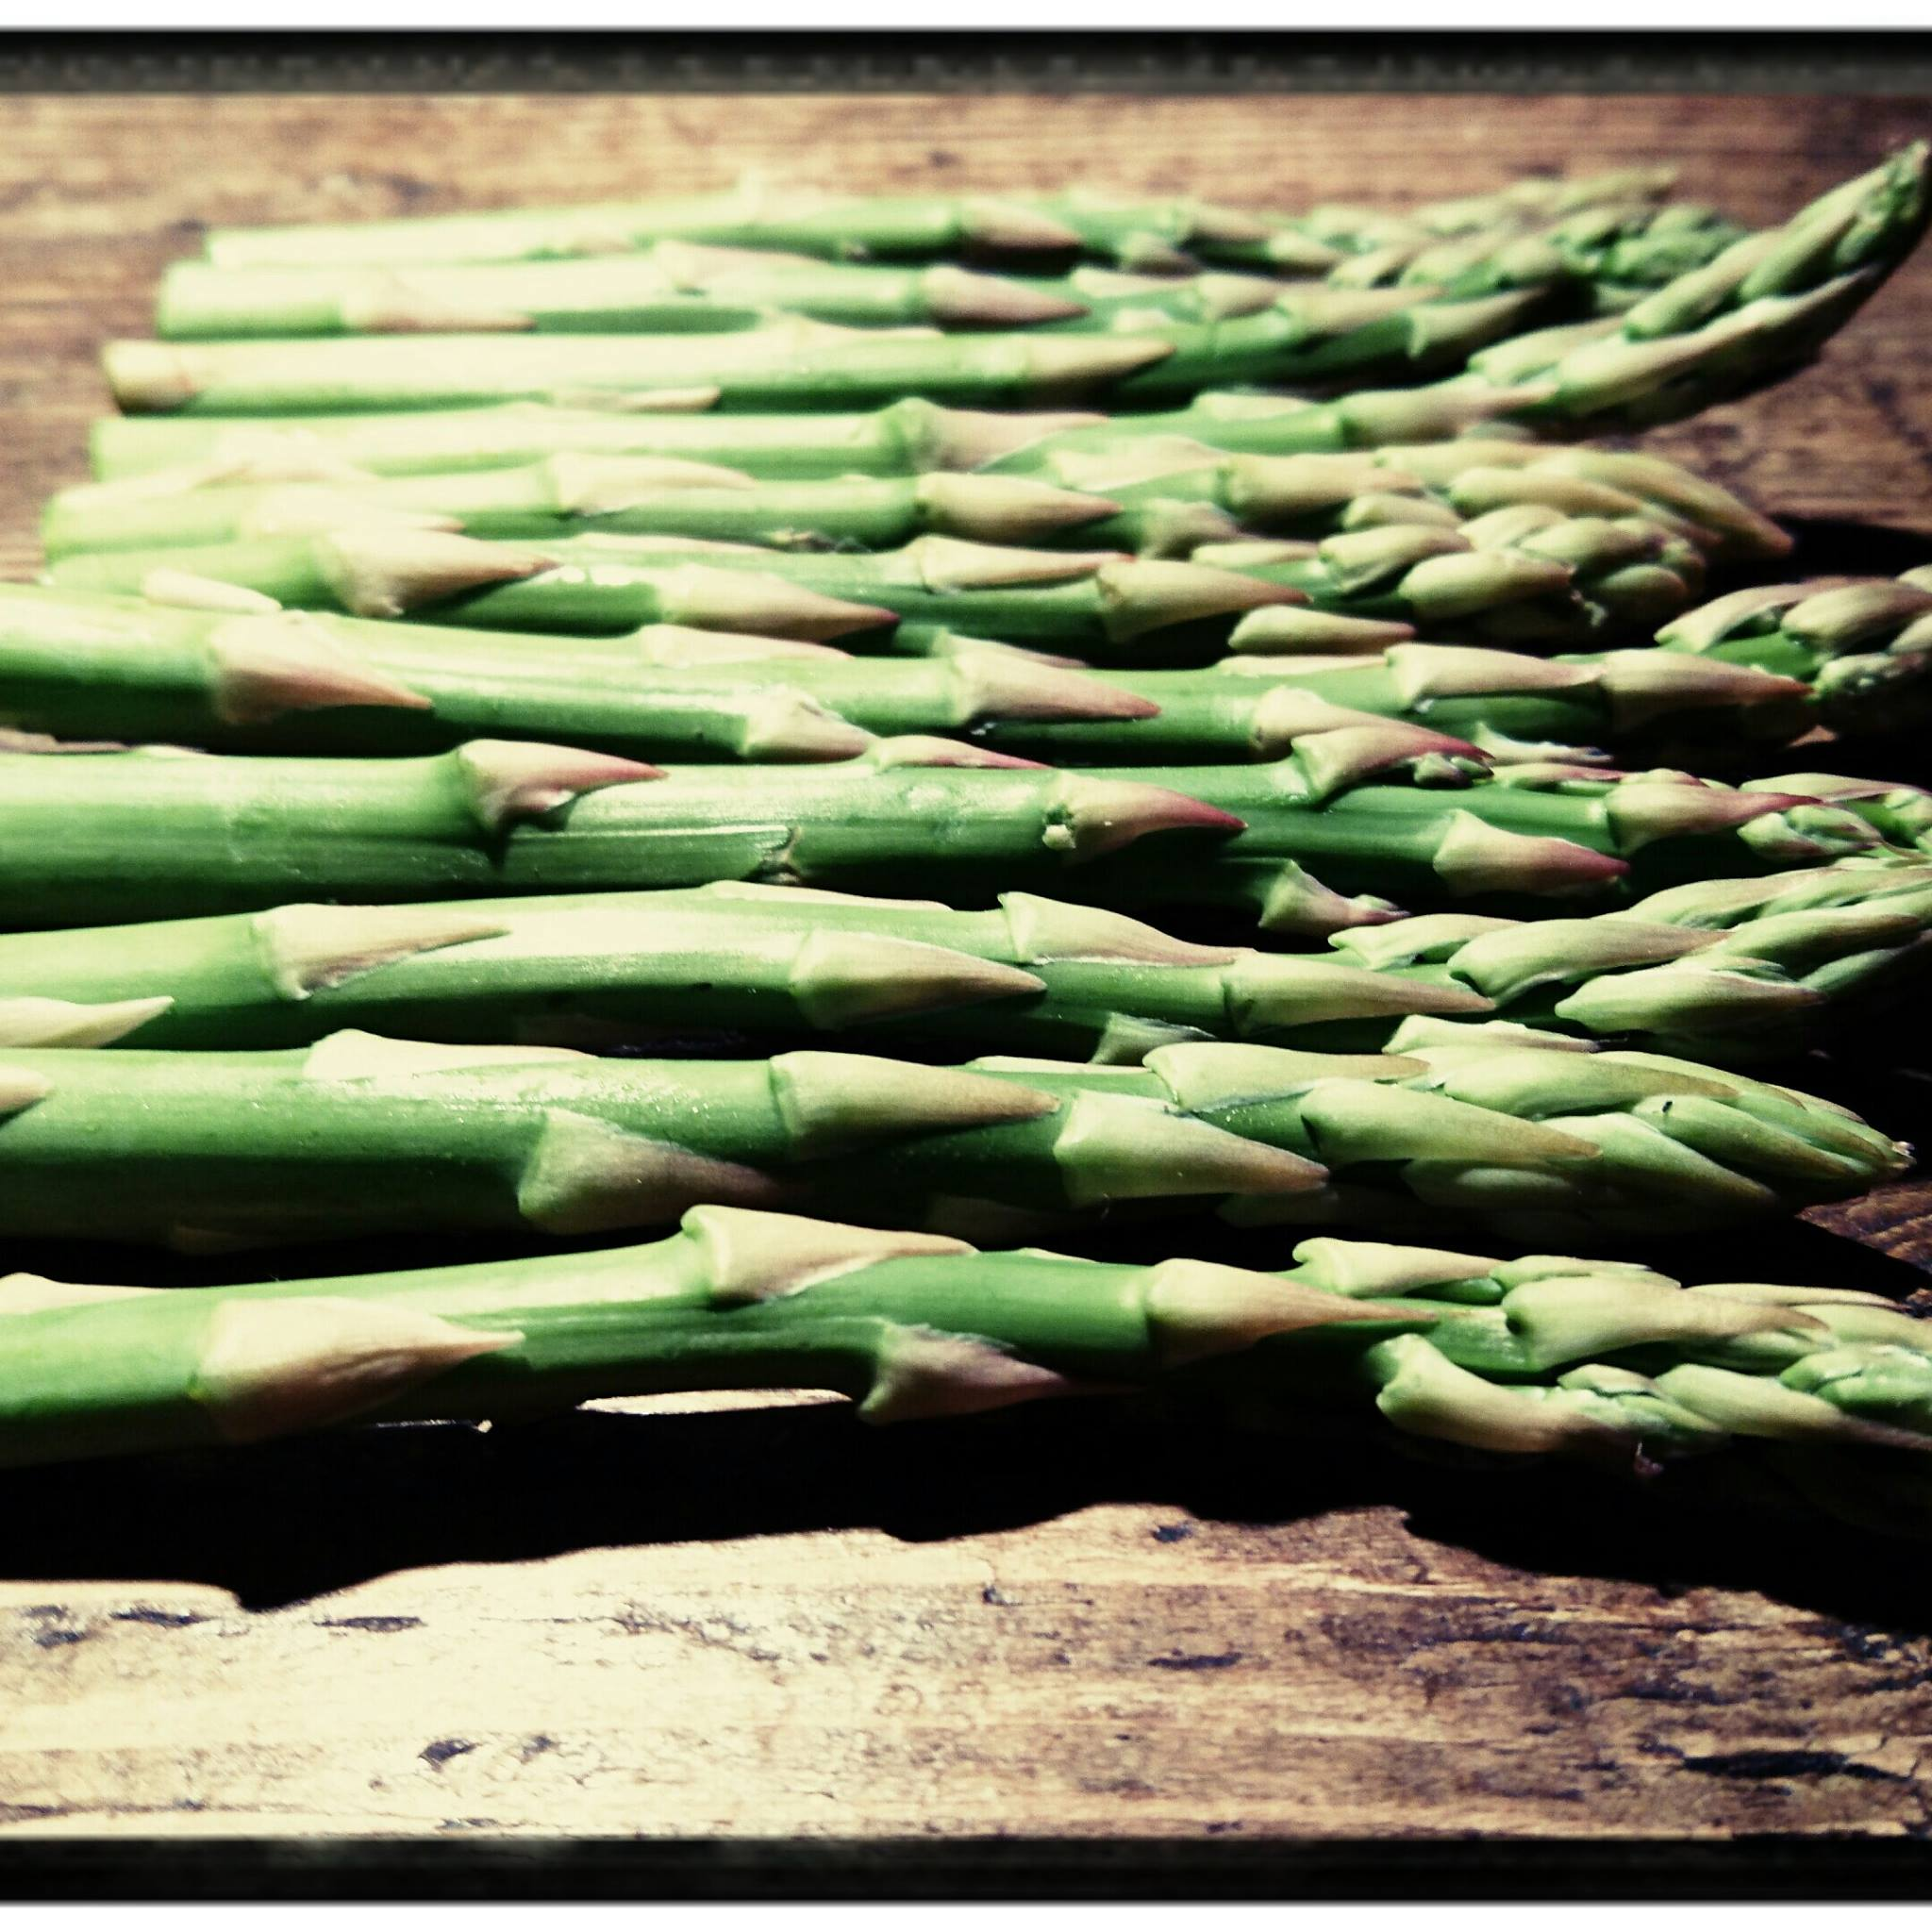 Why does my wee smell when I've eaten asparagus?